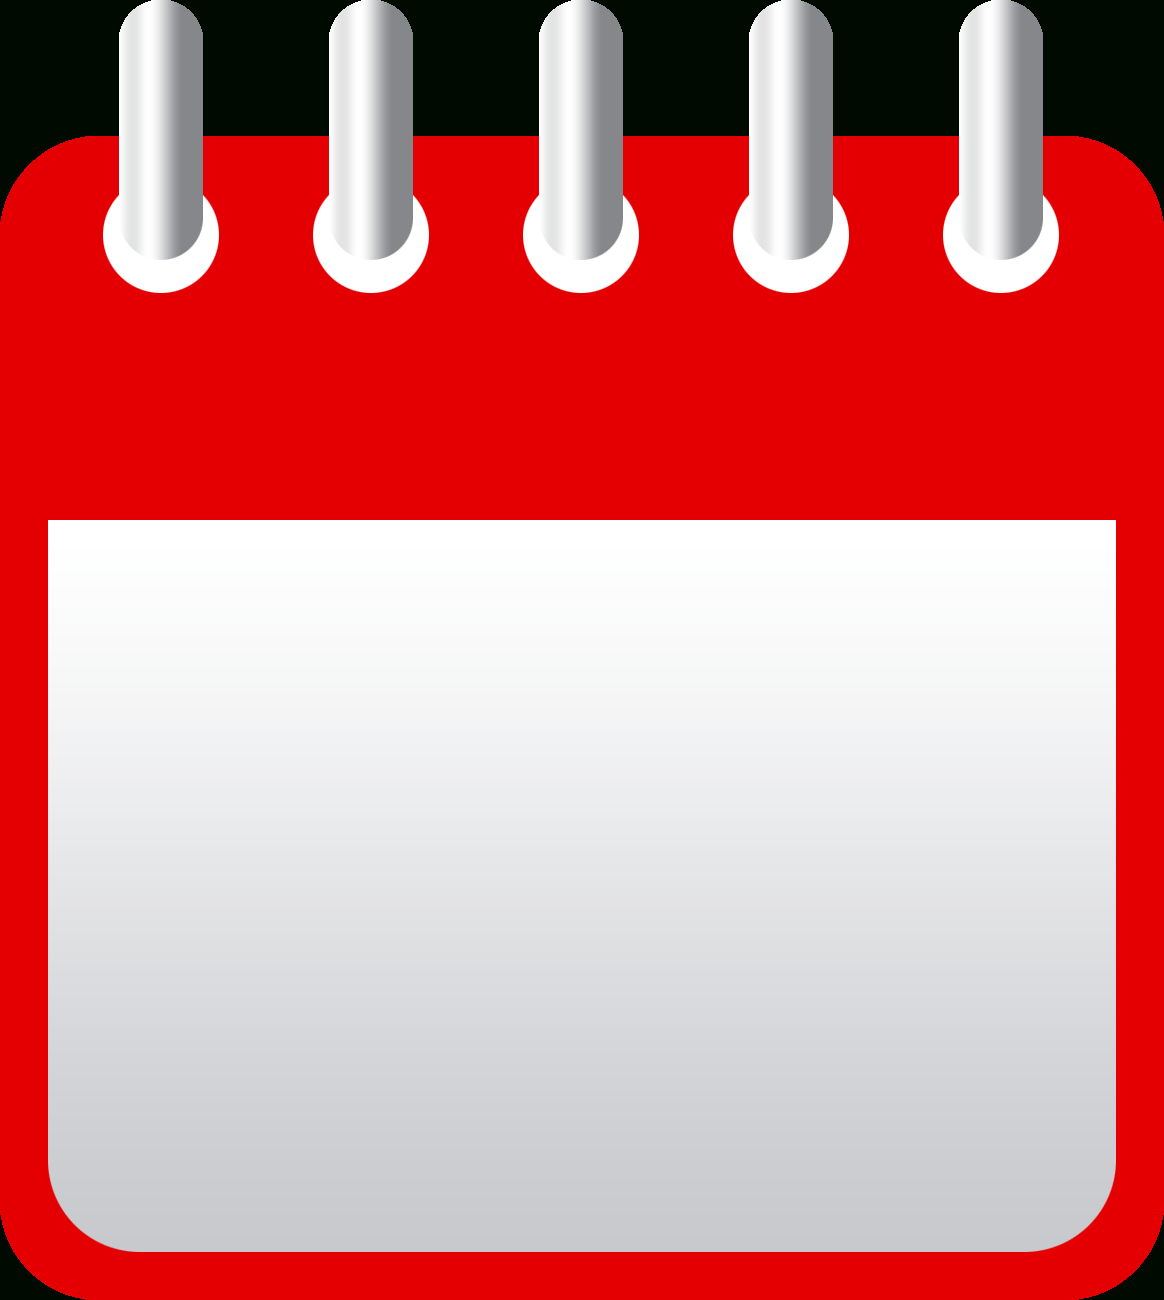 Icon Calendar Generator  Stack Overflow regarding Red Calendar Icon Png